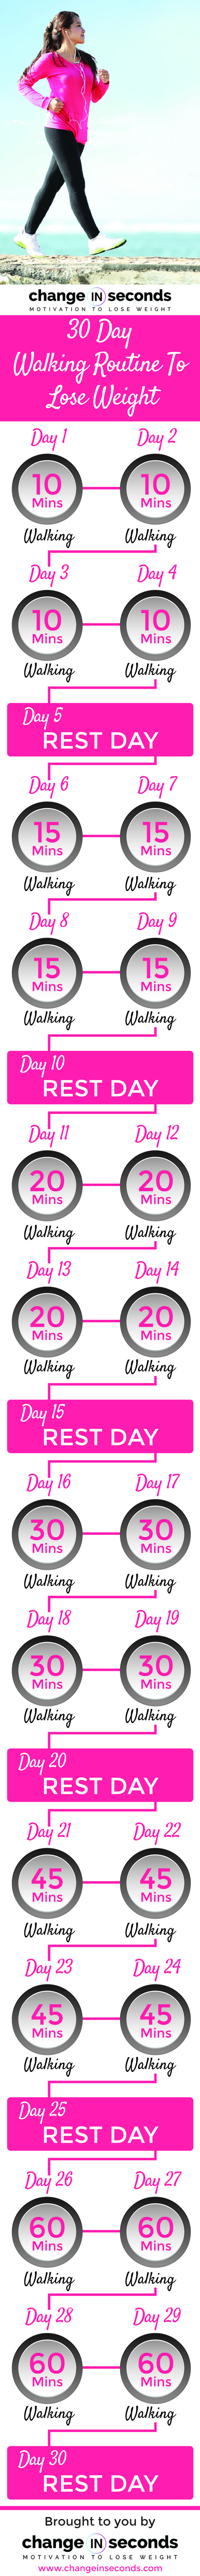 30 Day Walking Routine To Lose Weight (Download PDF) http://www.changeinseconds.com/30-day-walking-routine-to-lose-weight/